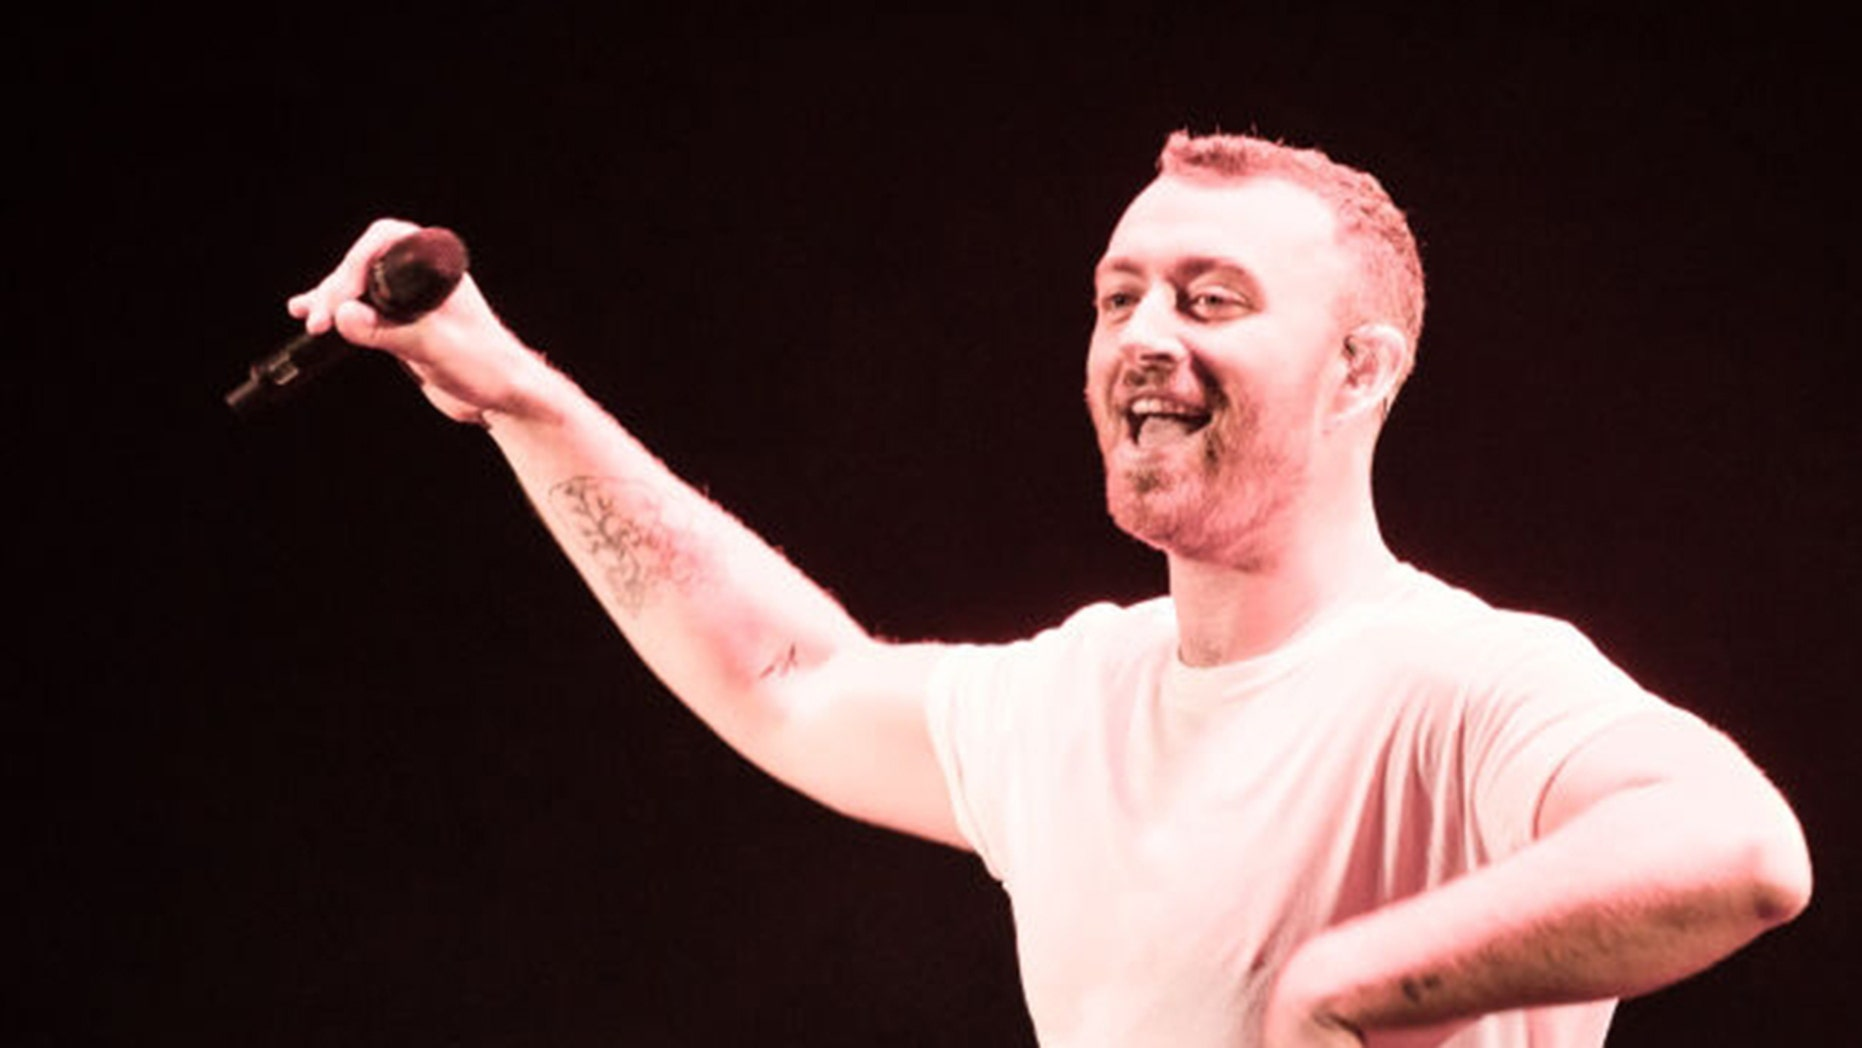 """In a newly-released speak on Friday, artist Sam Smith reportedly emitted that he considers himself to be """"non-binary,"""" and explained how he came to this realization."""